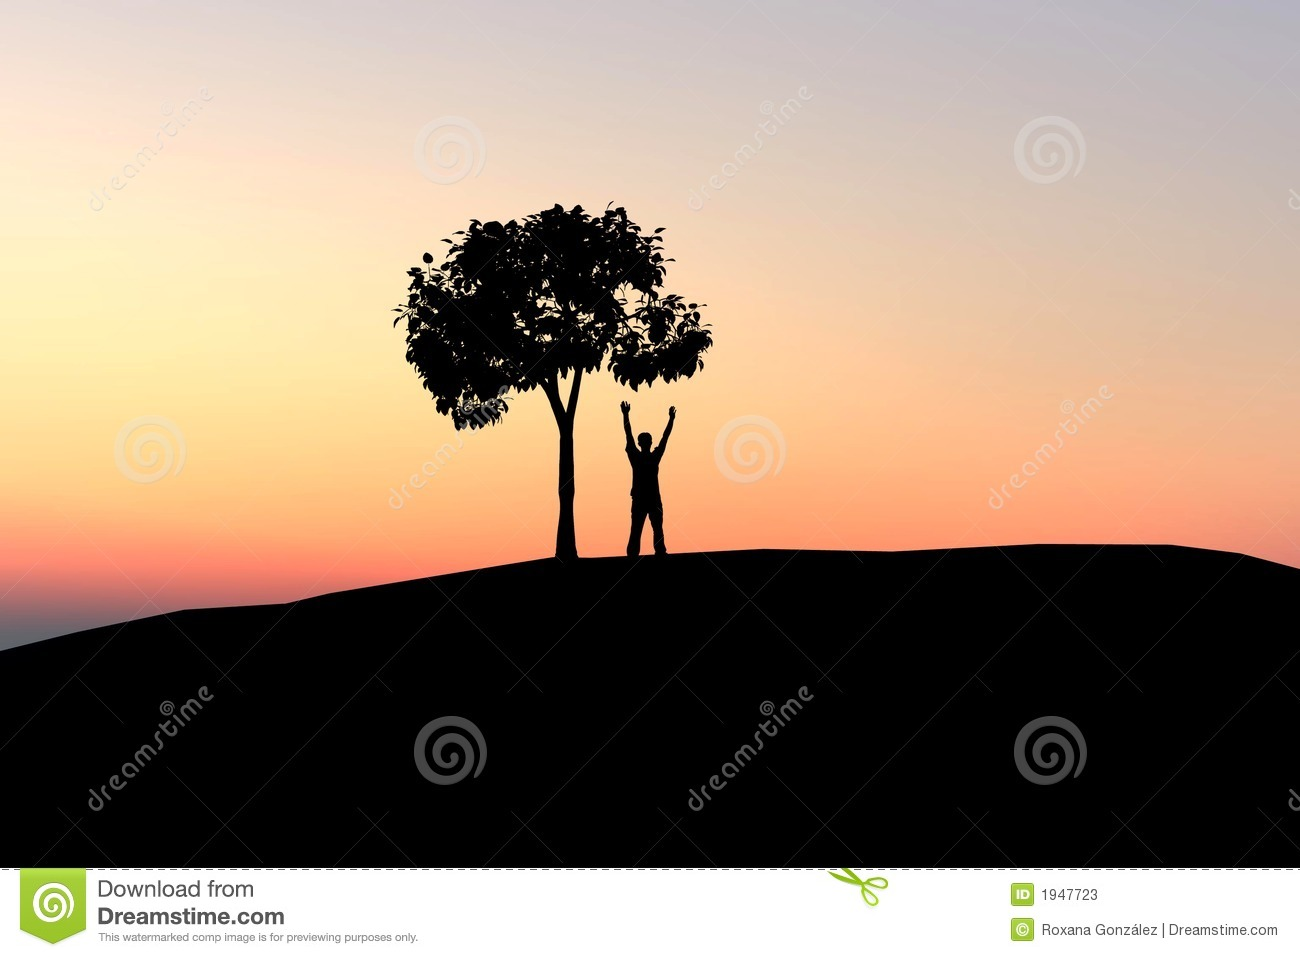 Lonely Tree clipart #20, Download drawings